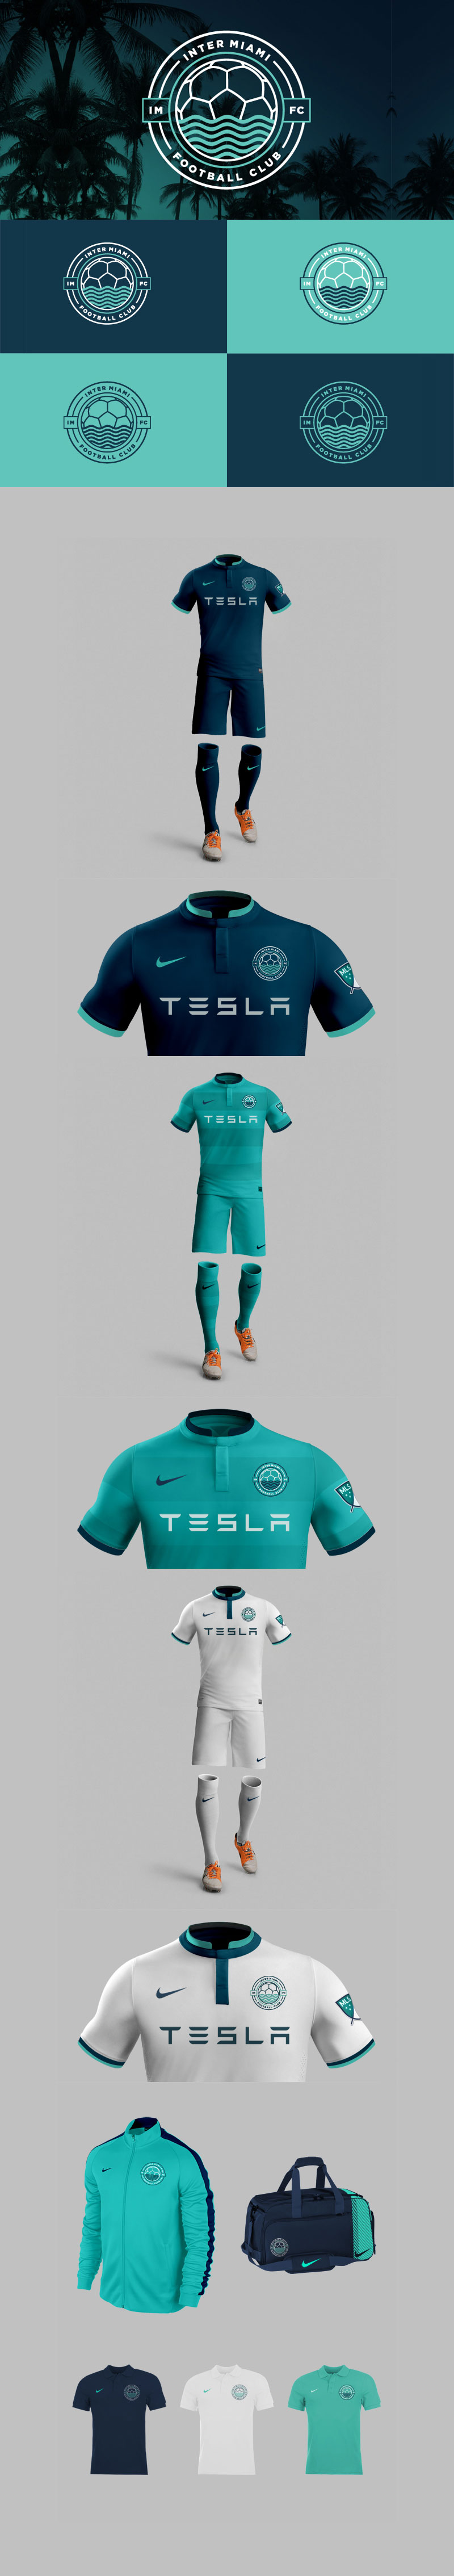 Football Club Brand Designs: Miami MLS Team by Diego Guevara